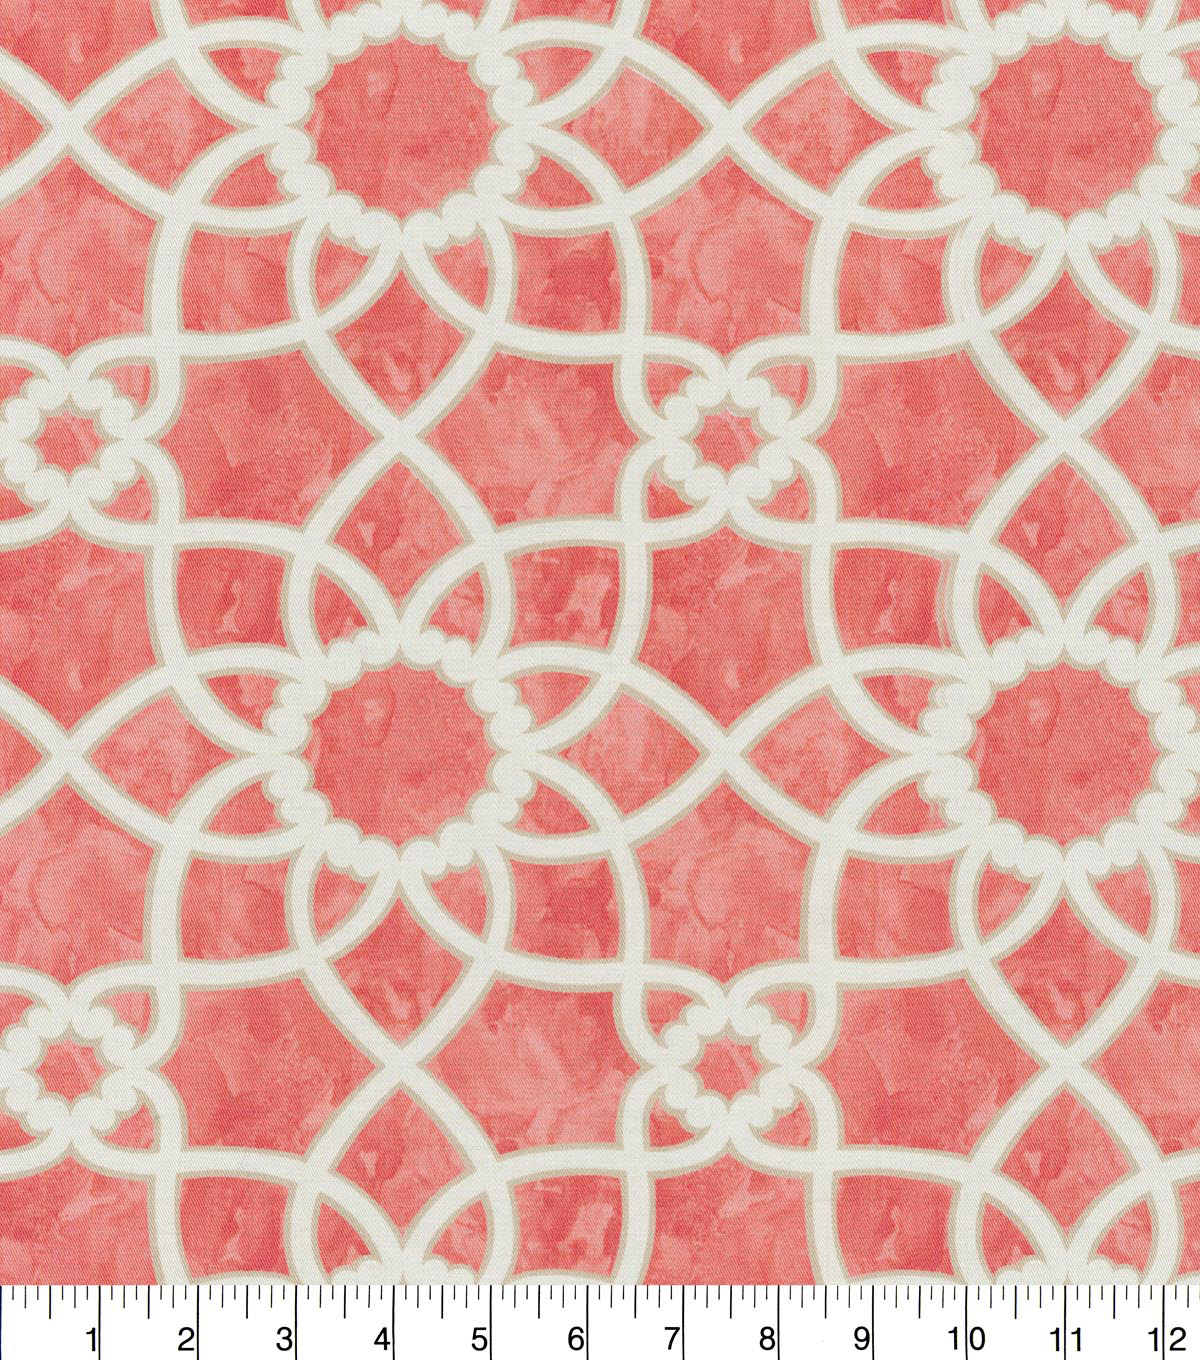 Home Decor 8\u0022x8\u0022 Fabric Swatch-Waverly In Great Shape Clay